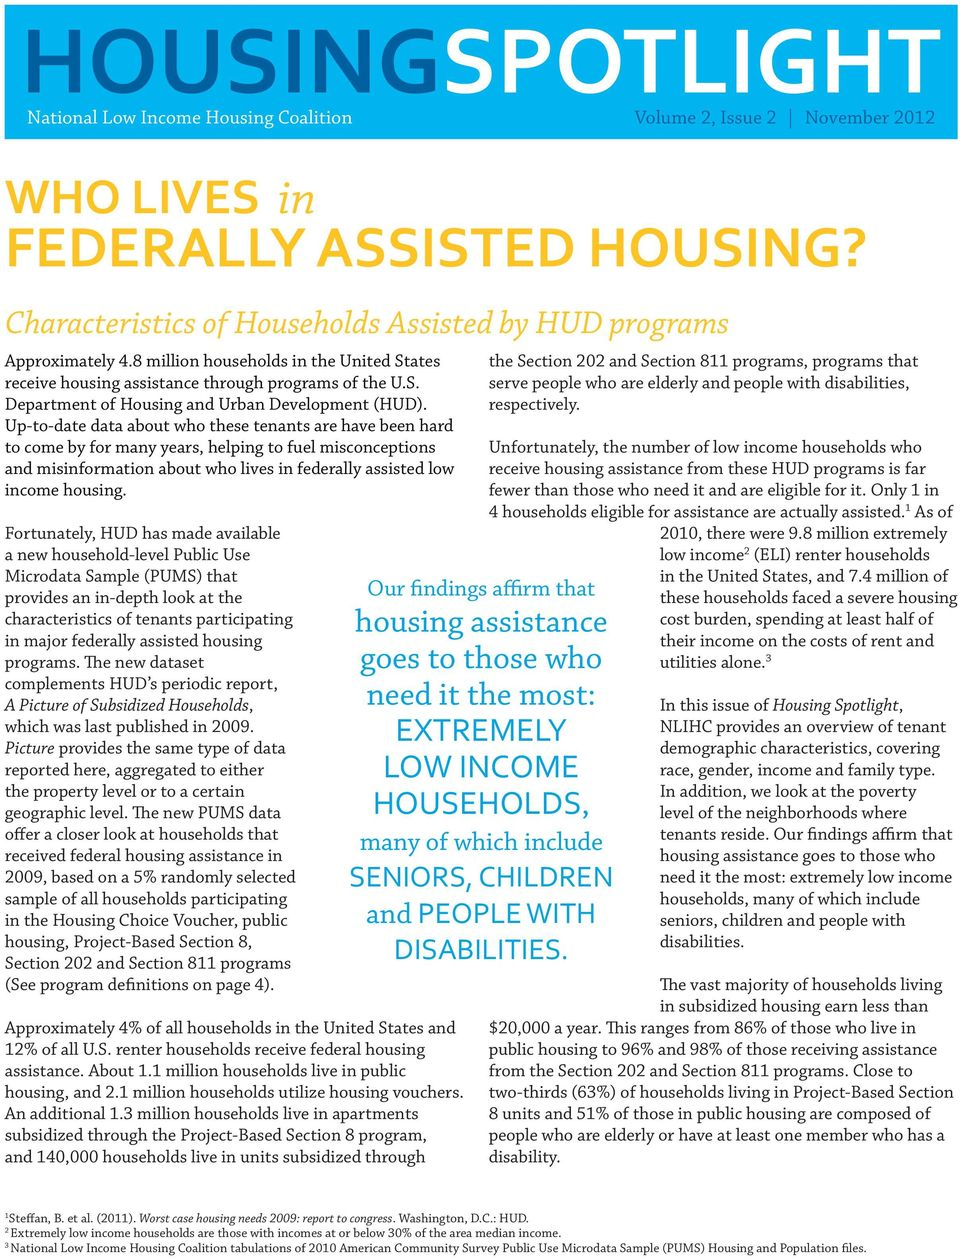 Up-to-date data about who these tenants are have been hard to come by for many years, helping to fuel misconceptions and misinformation about who lives in federally assisted low income housing.